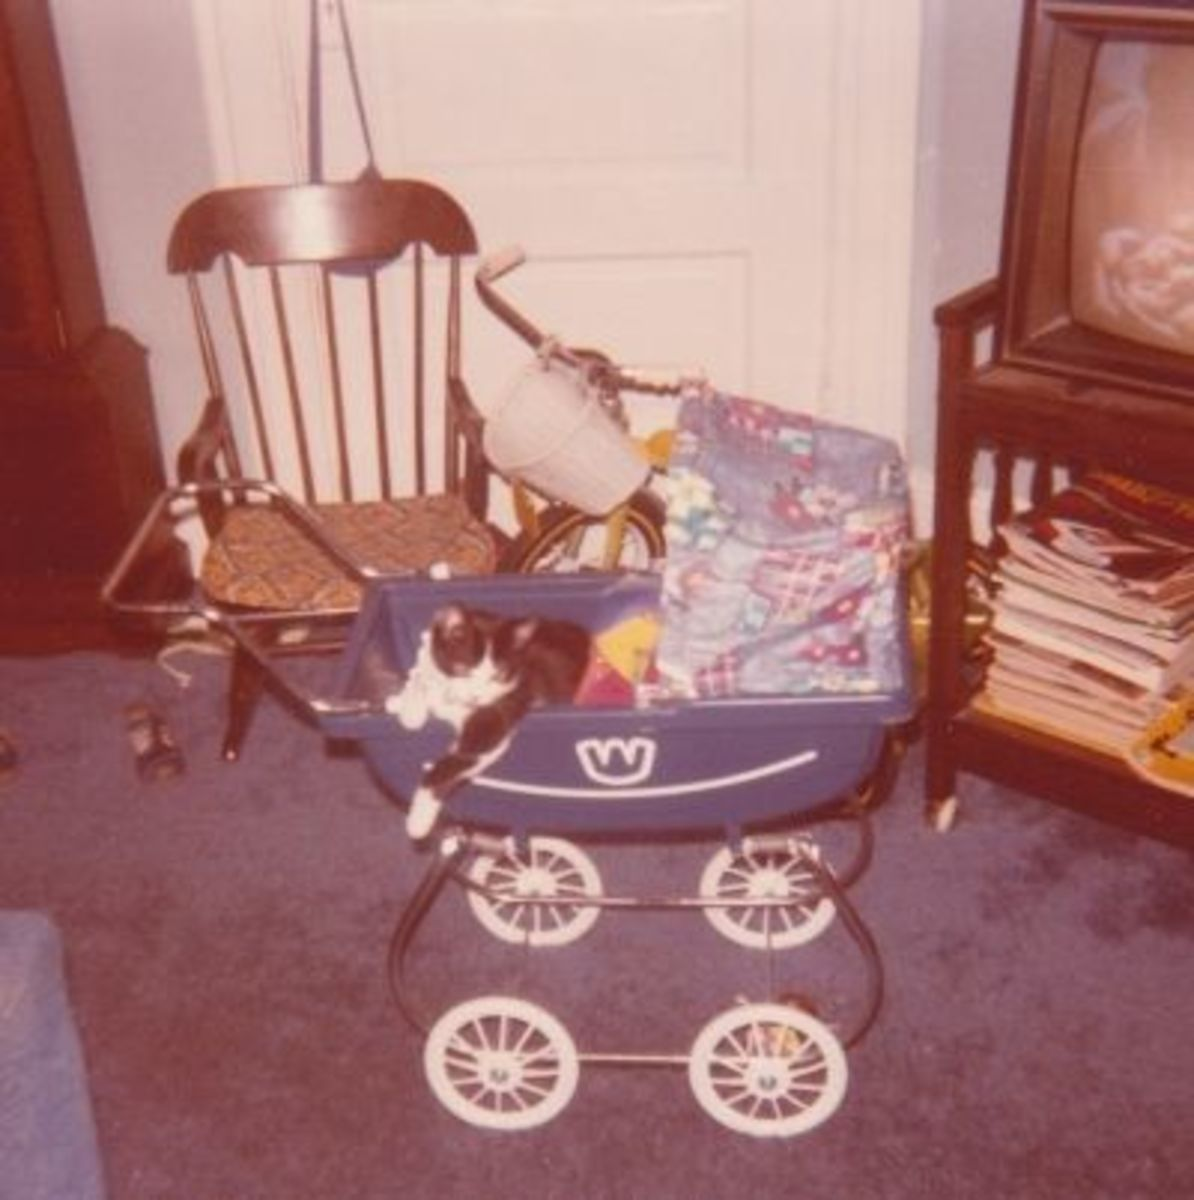 My Cat Tom R.I.P. when I was little